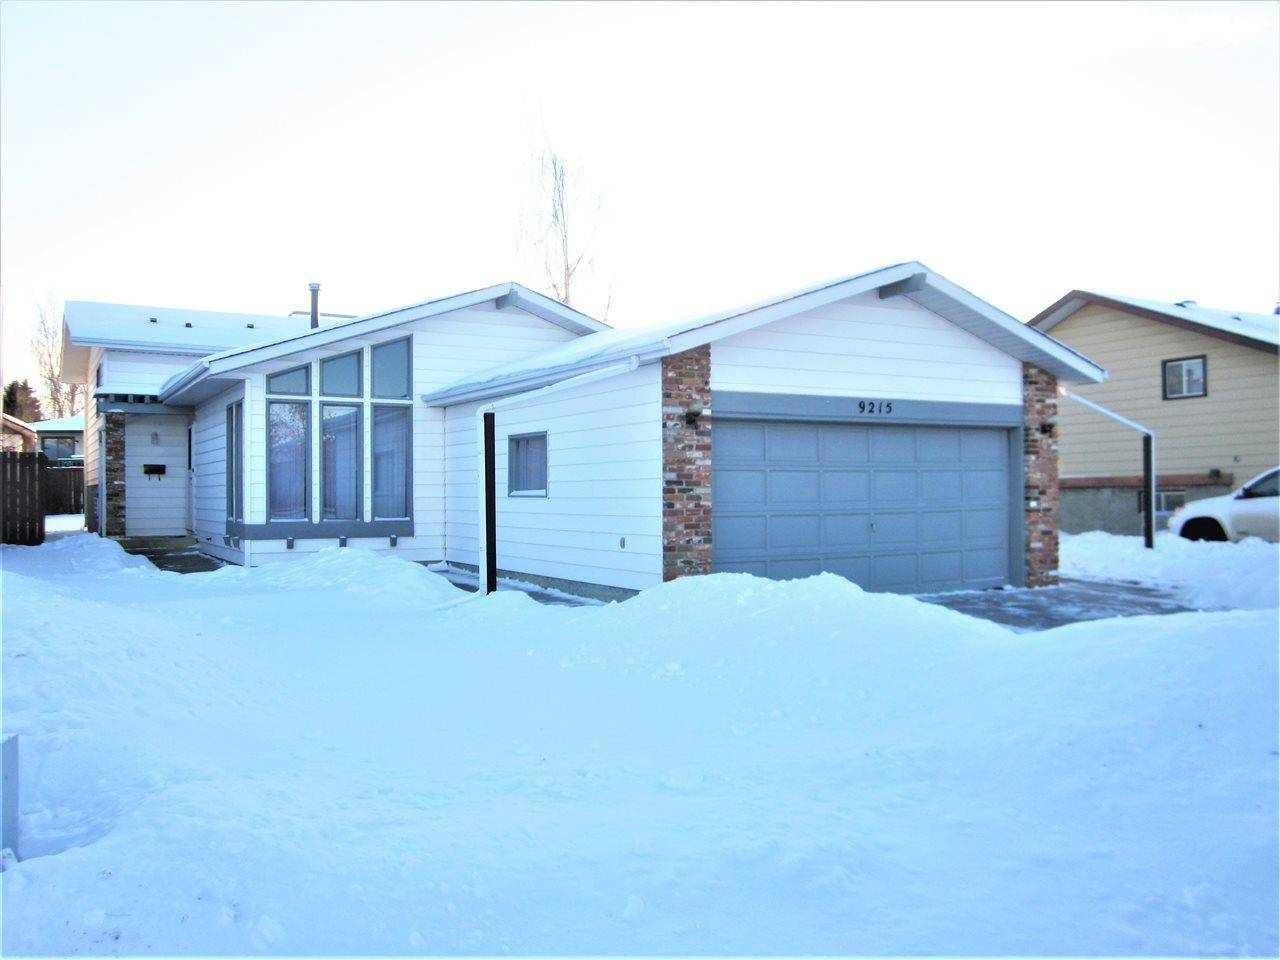 House for sale at 9215 171 Ave Nw Edmonton Alberta - MLS: E4185018